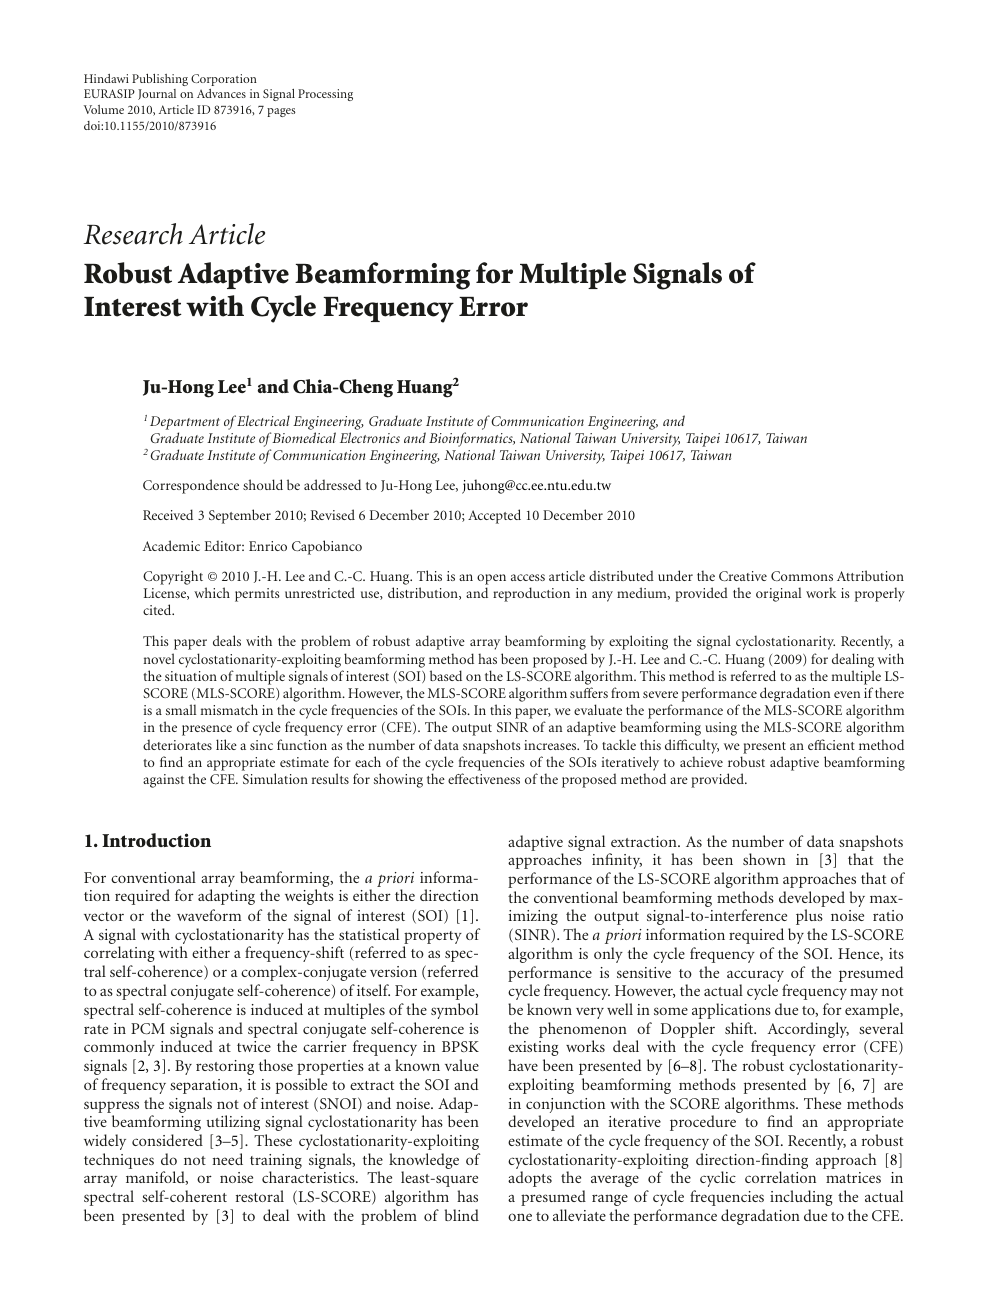 Robust Adaptive Beamforming for Multiple Signals of Interest